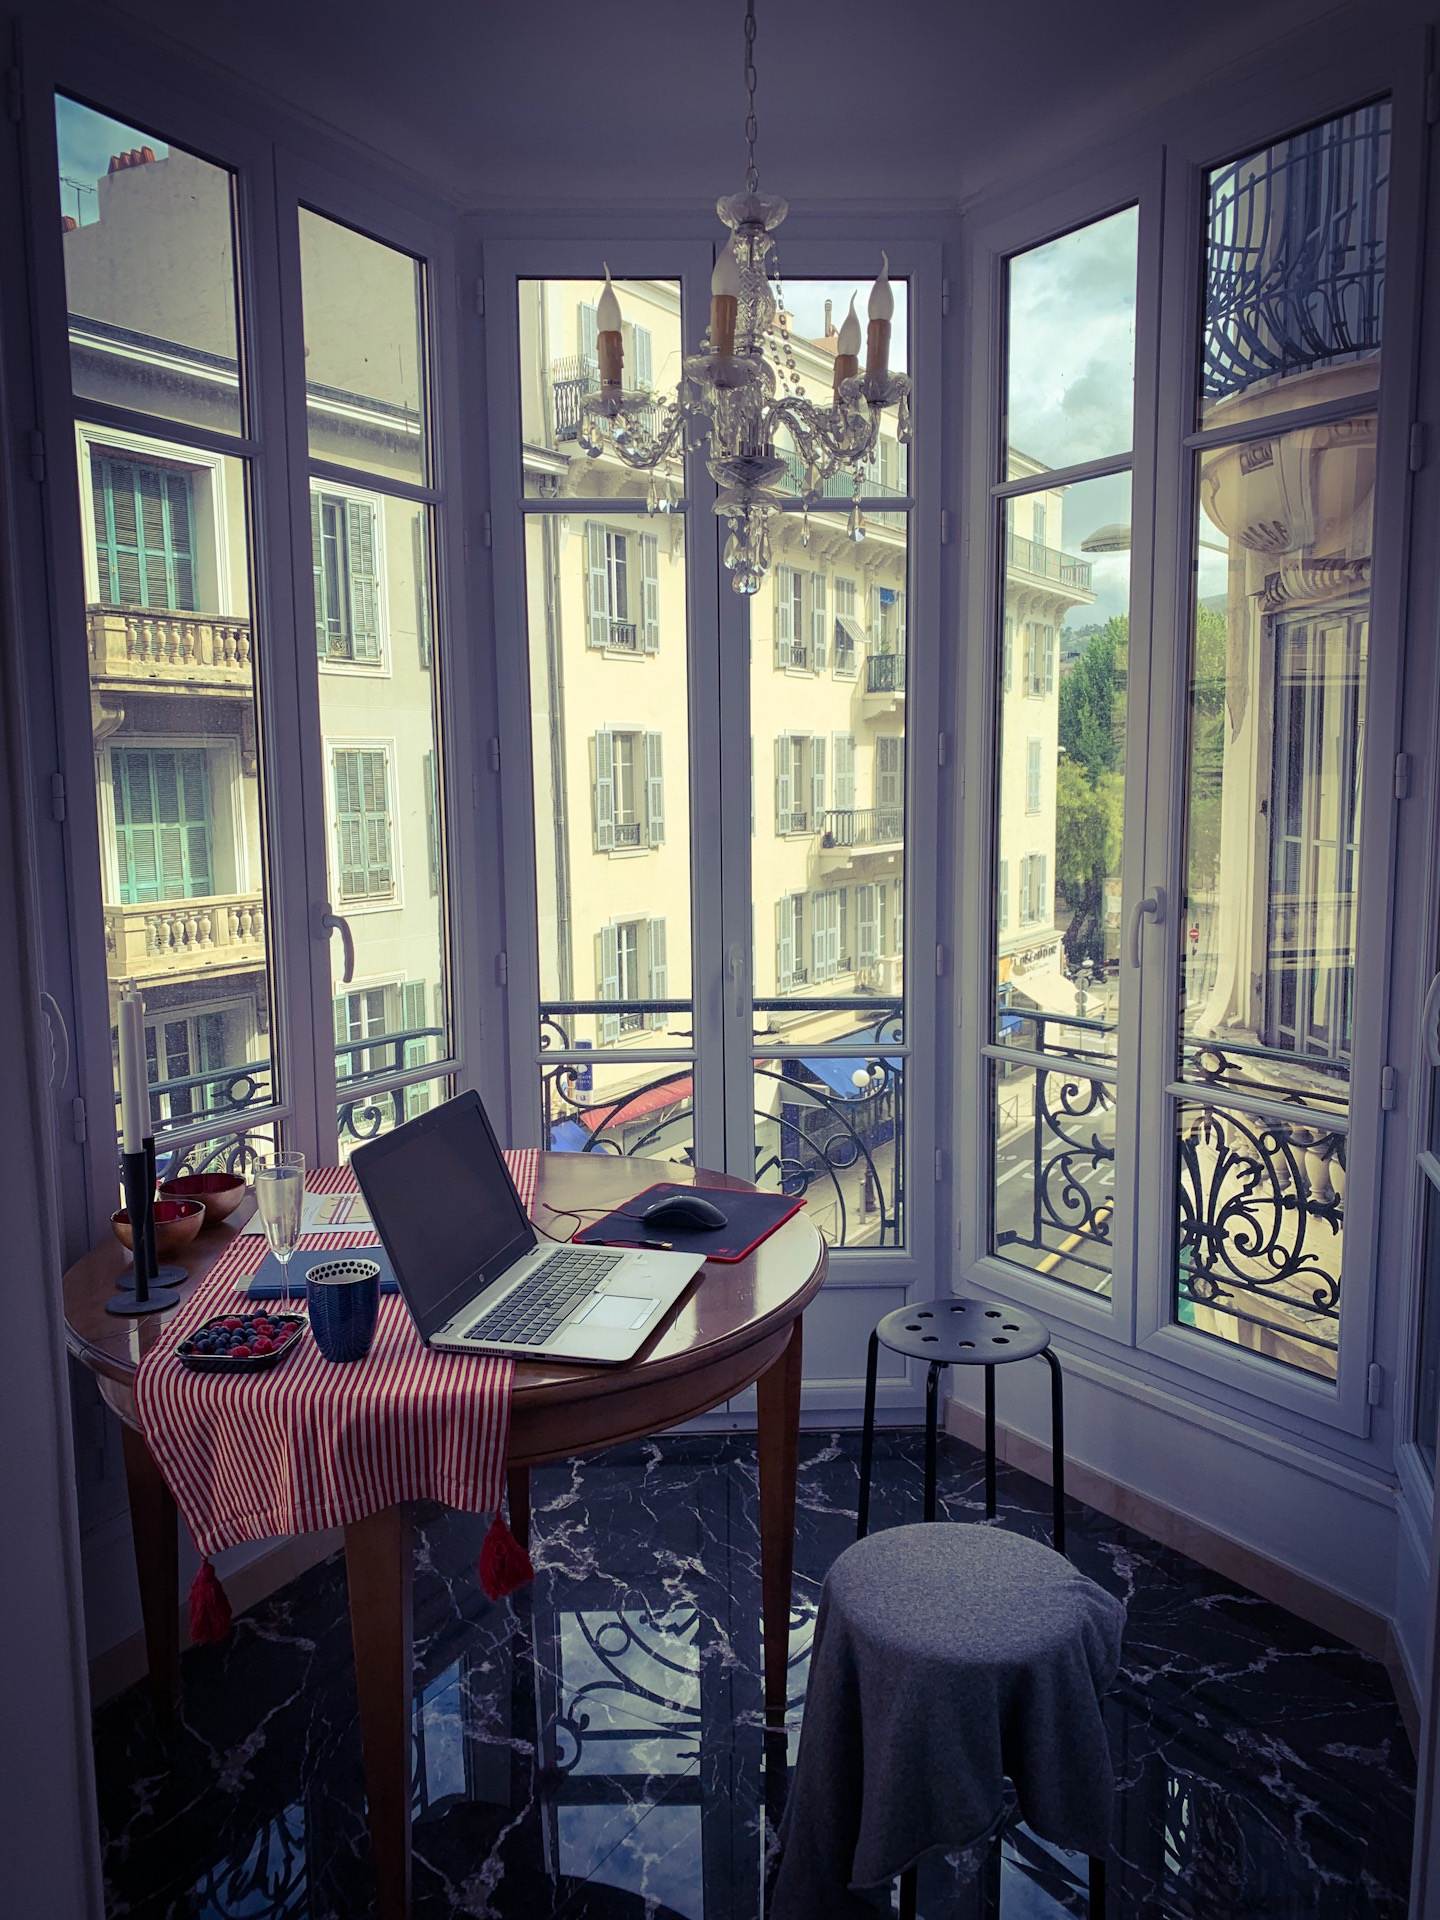 This week I have temporarily move my office to my apartment in Nice